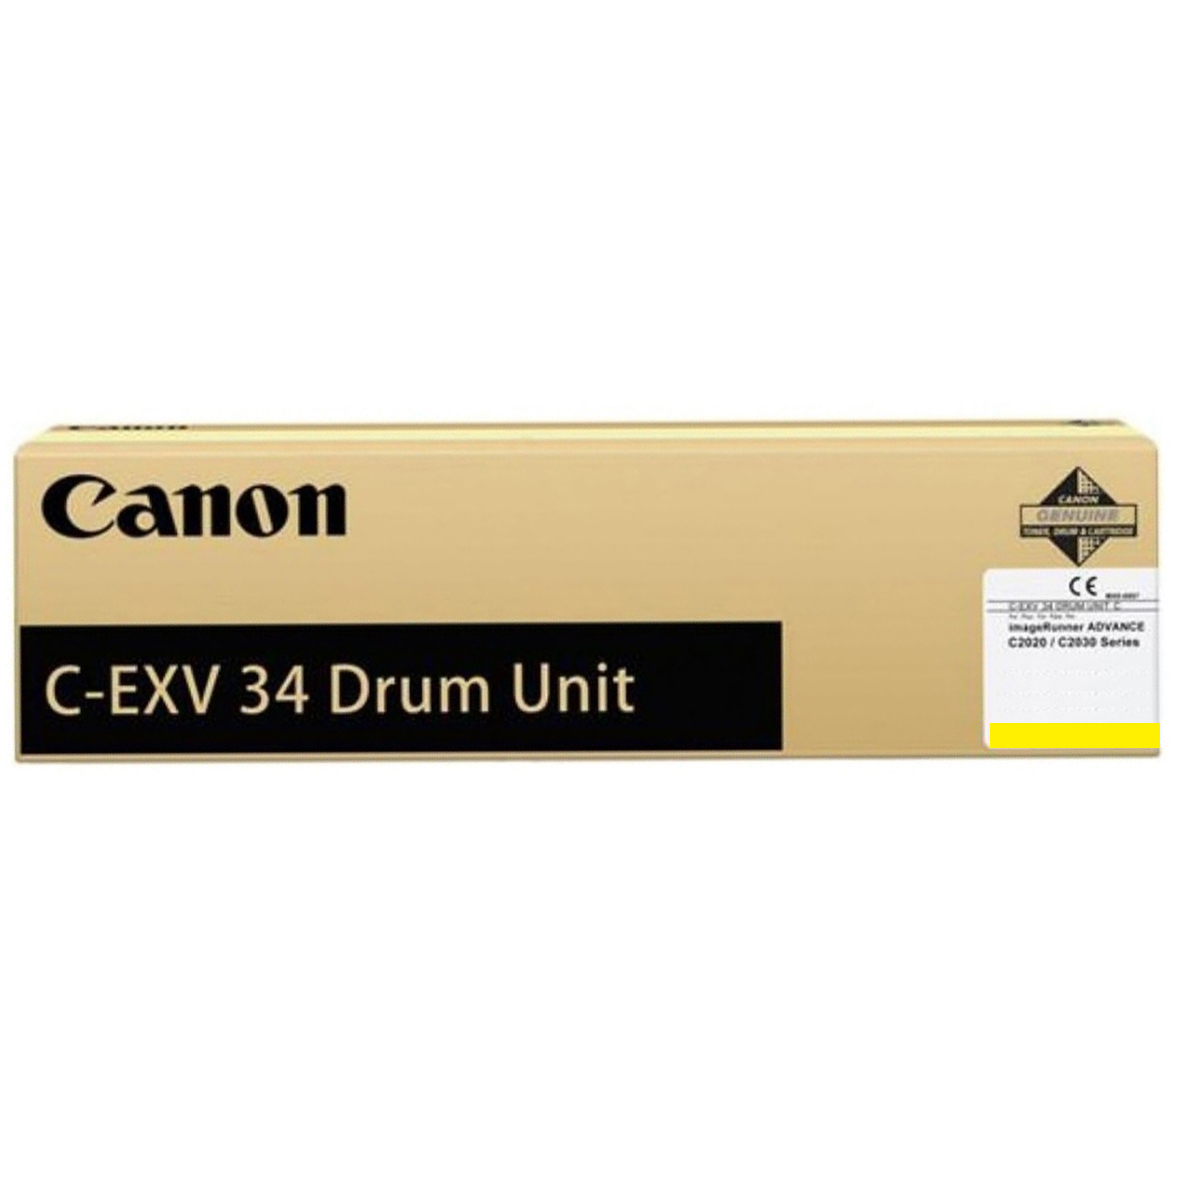 Фотобарабан Canon Drum Unit C-EXV34 для iRAC20xx, Yellow (3789B003)